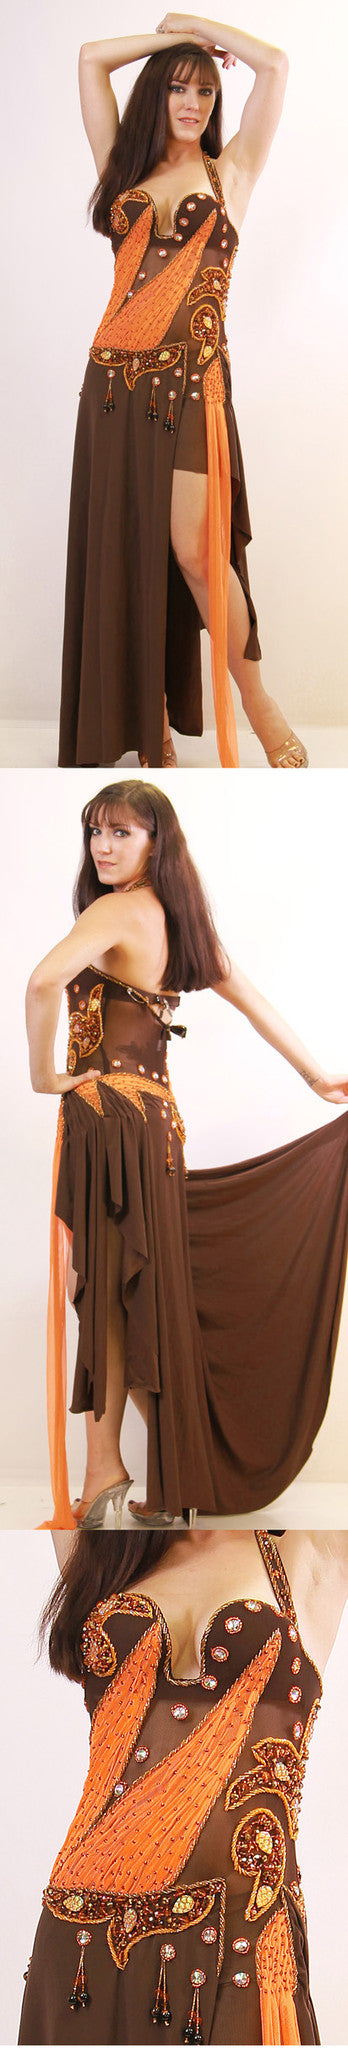 Arabian Nights Dress Costume Sale